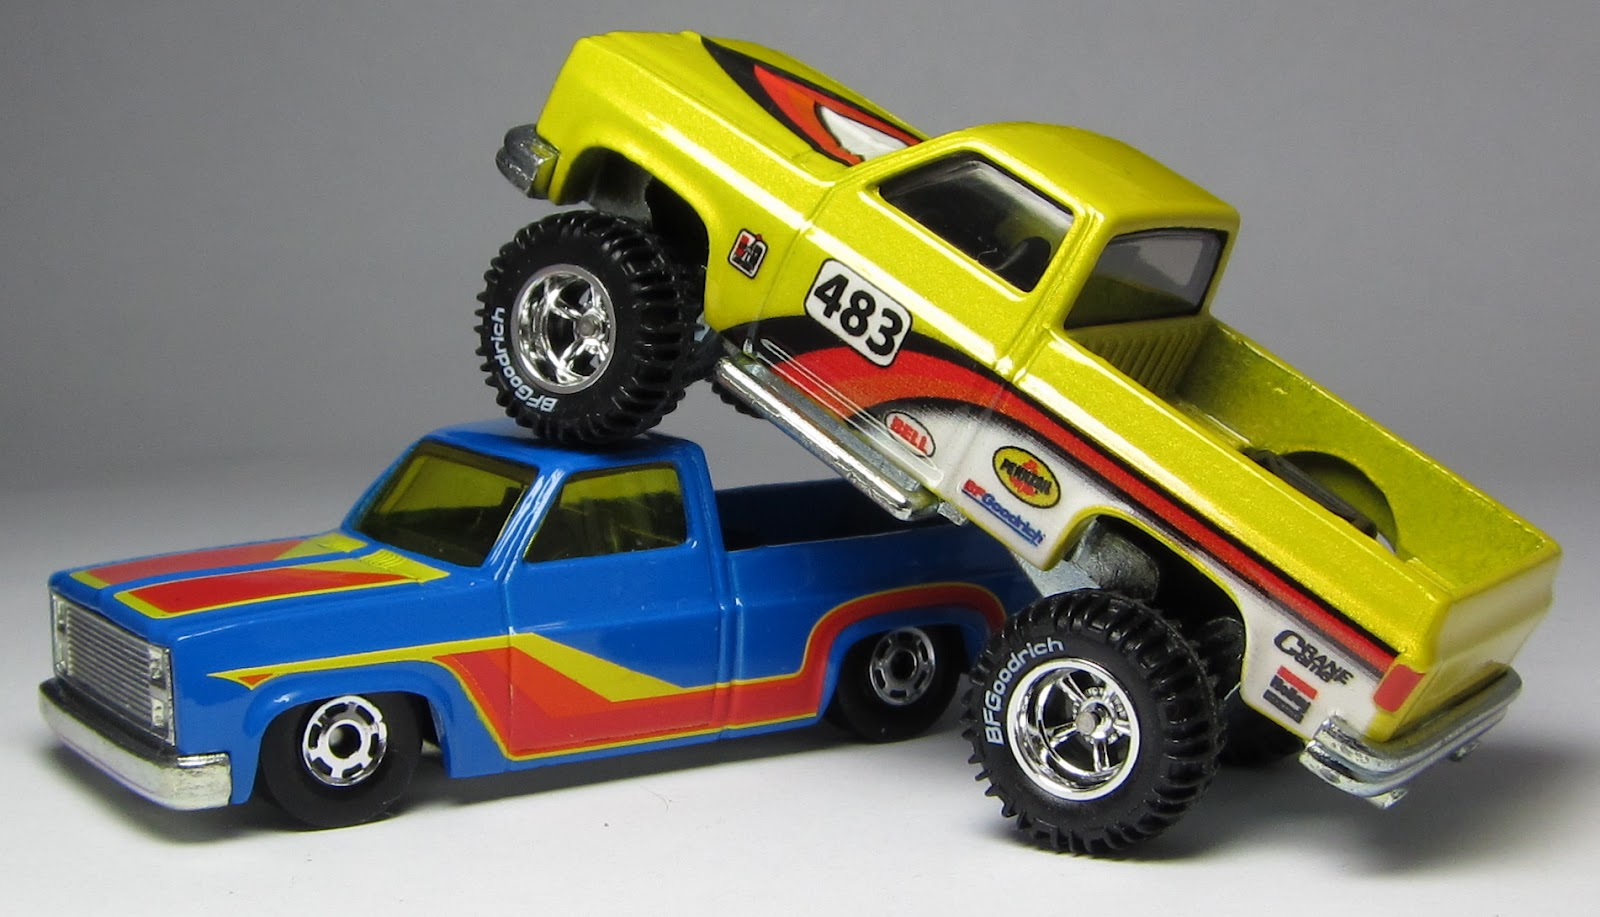 DLMer's view of the new version of the Hot Wheels '83 Silverado… – the Lamley Group